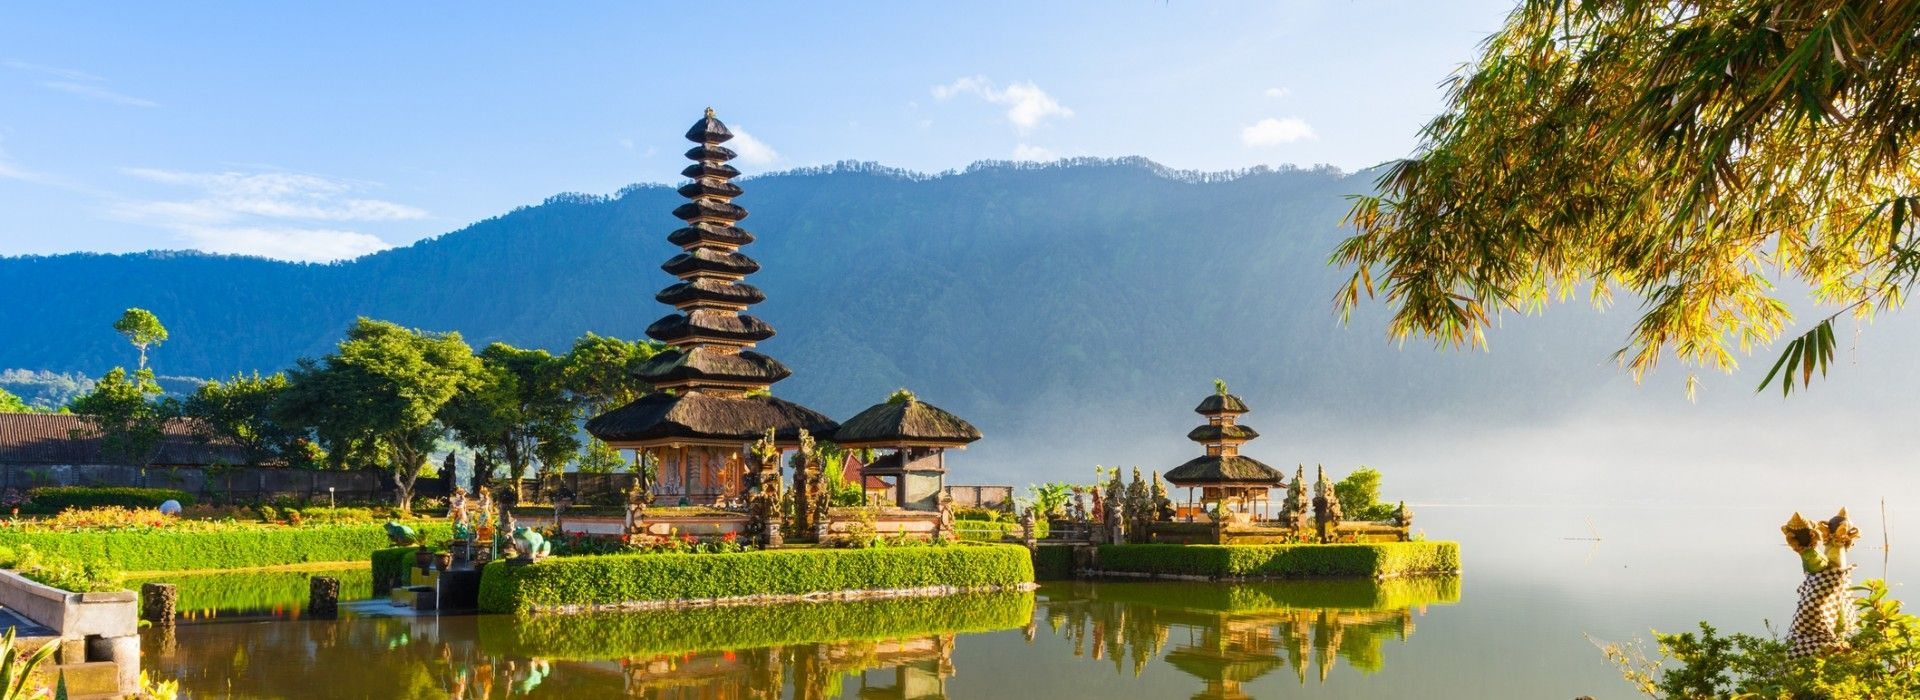 Active and outdoor Tours in Bali